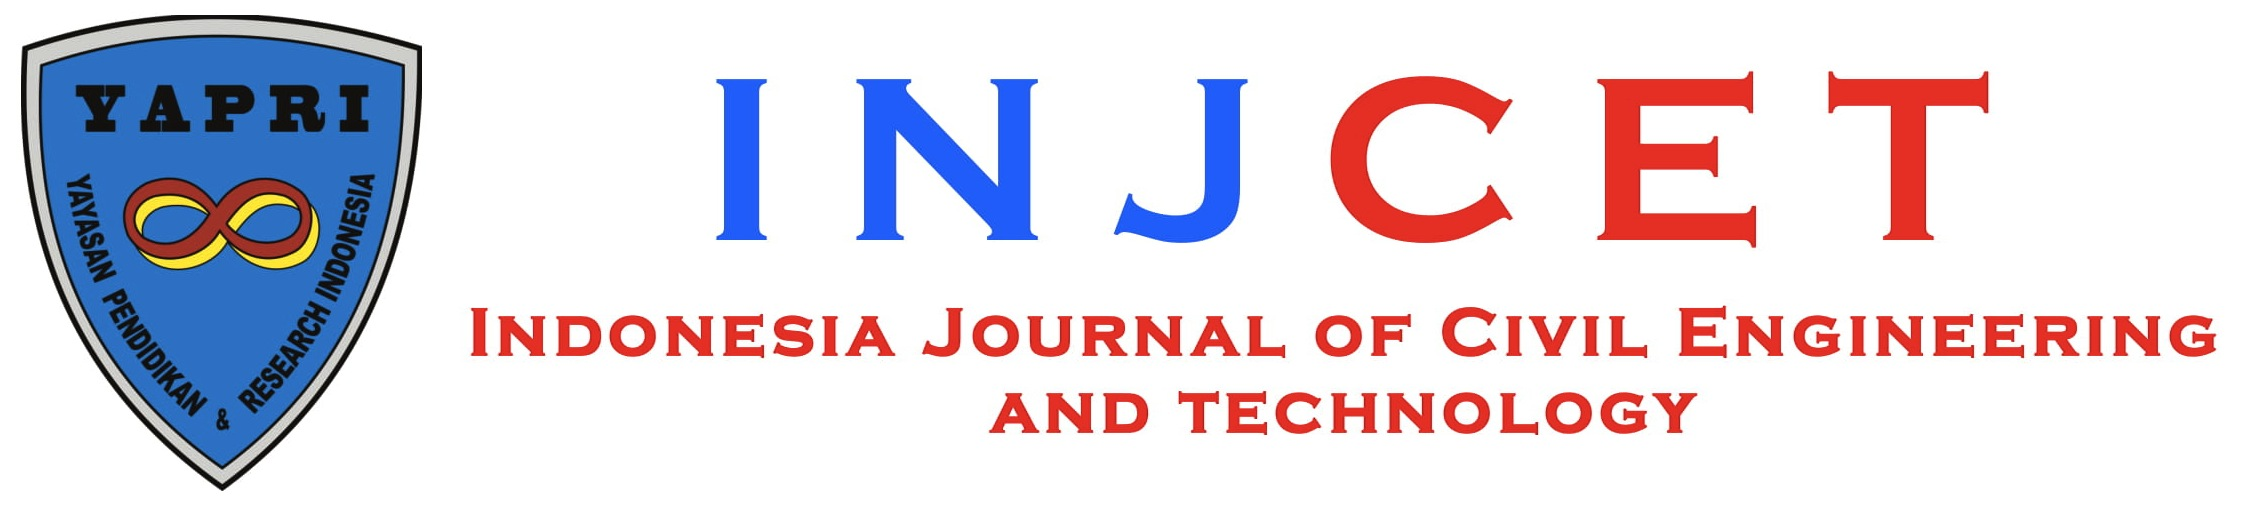 Indonesia Journal of Civil Engineering and Technology